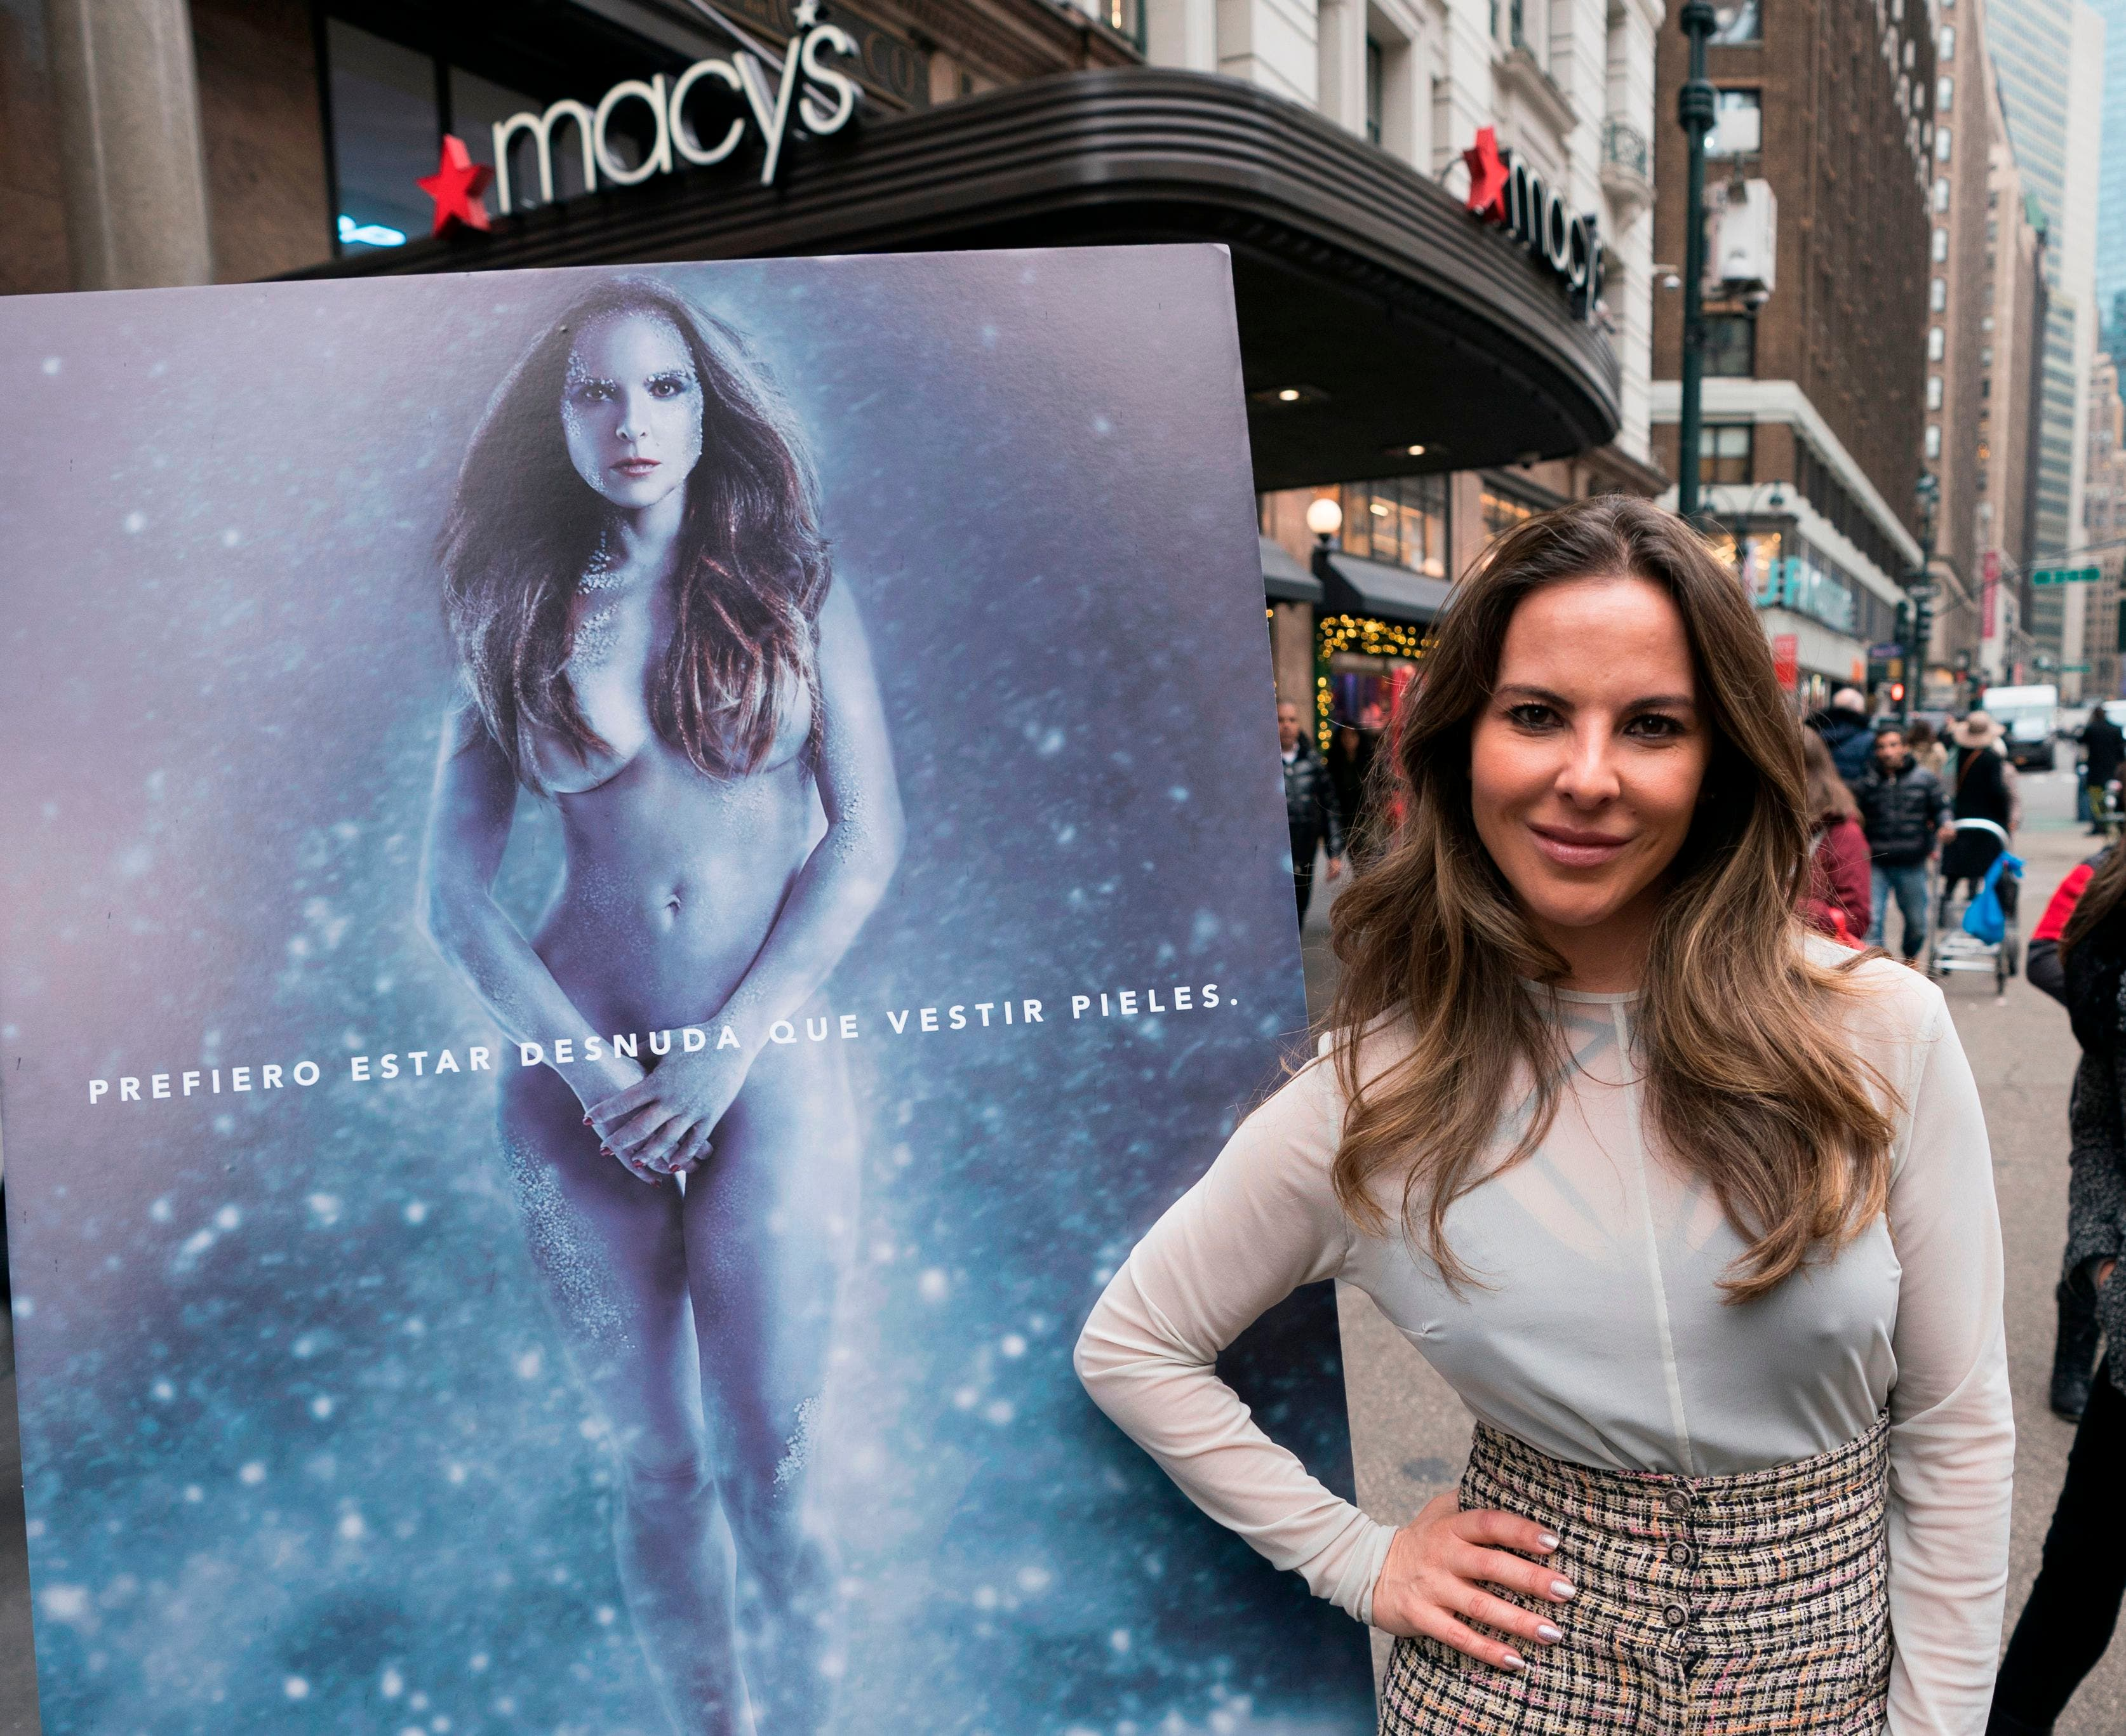 Kate del Castillo se desnuda en defensa de los animales